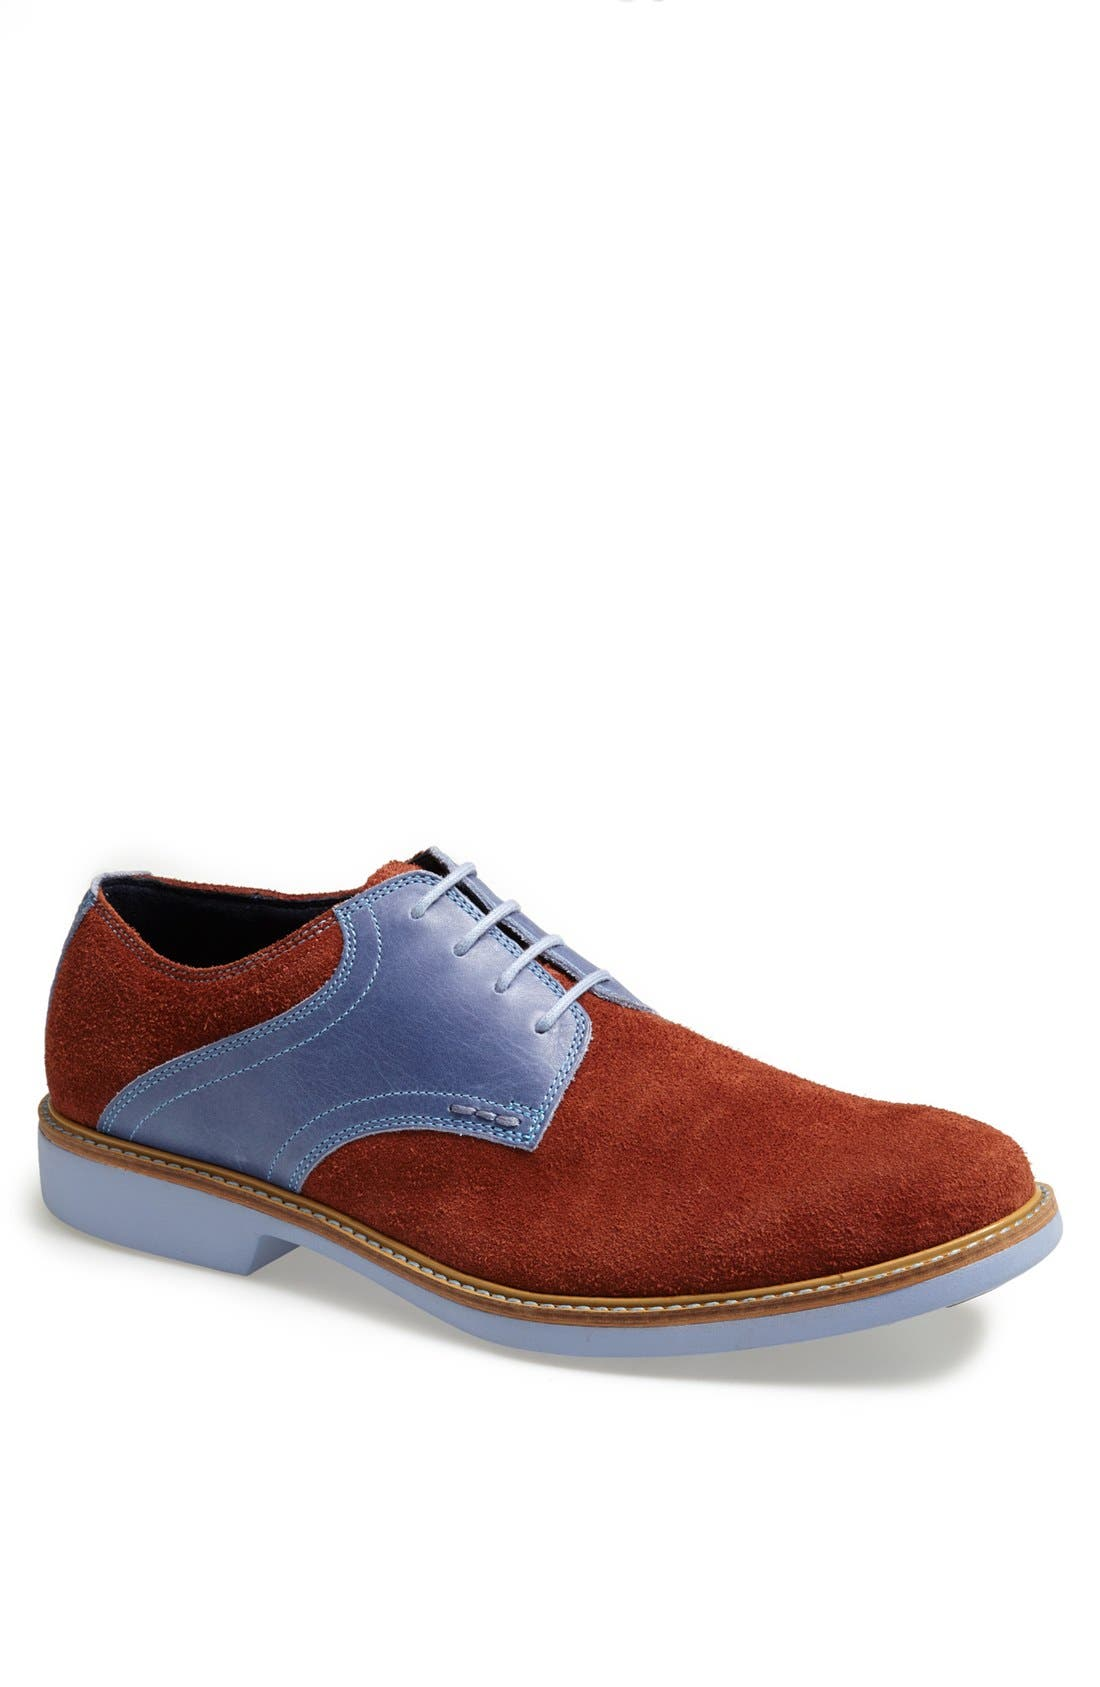 Main Image - Cole Haan 'Great Jones' Saddle Shoe